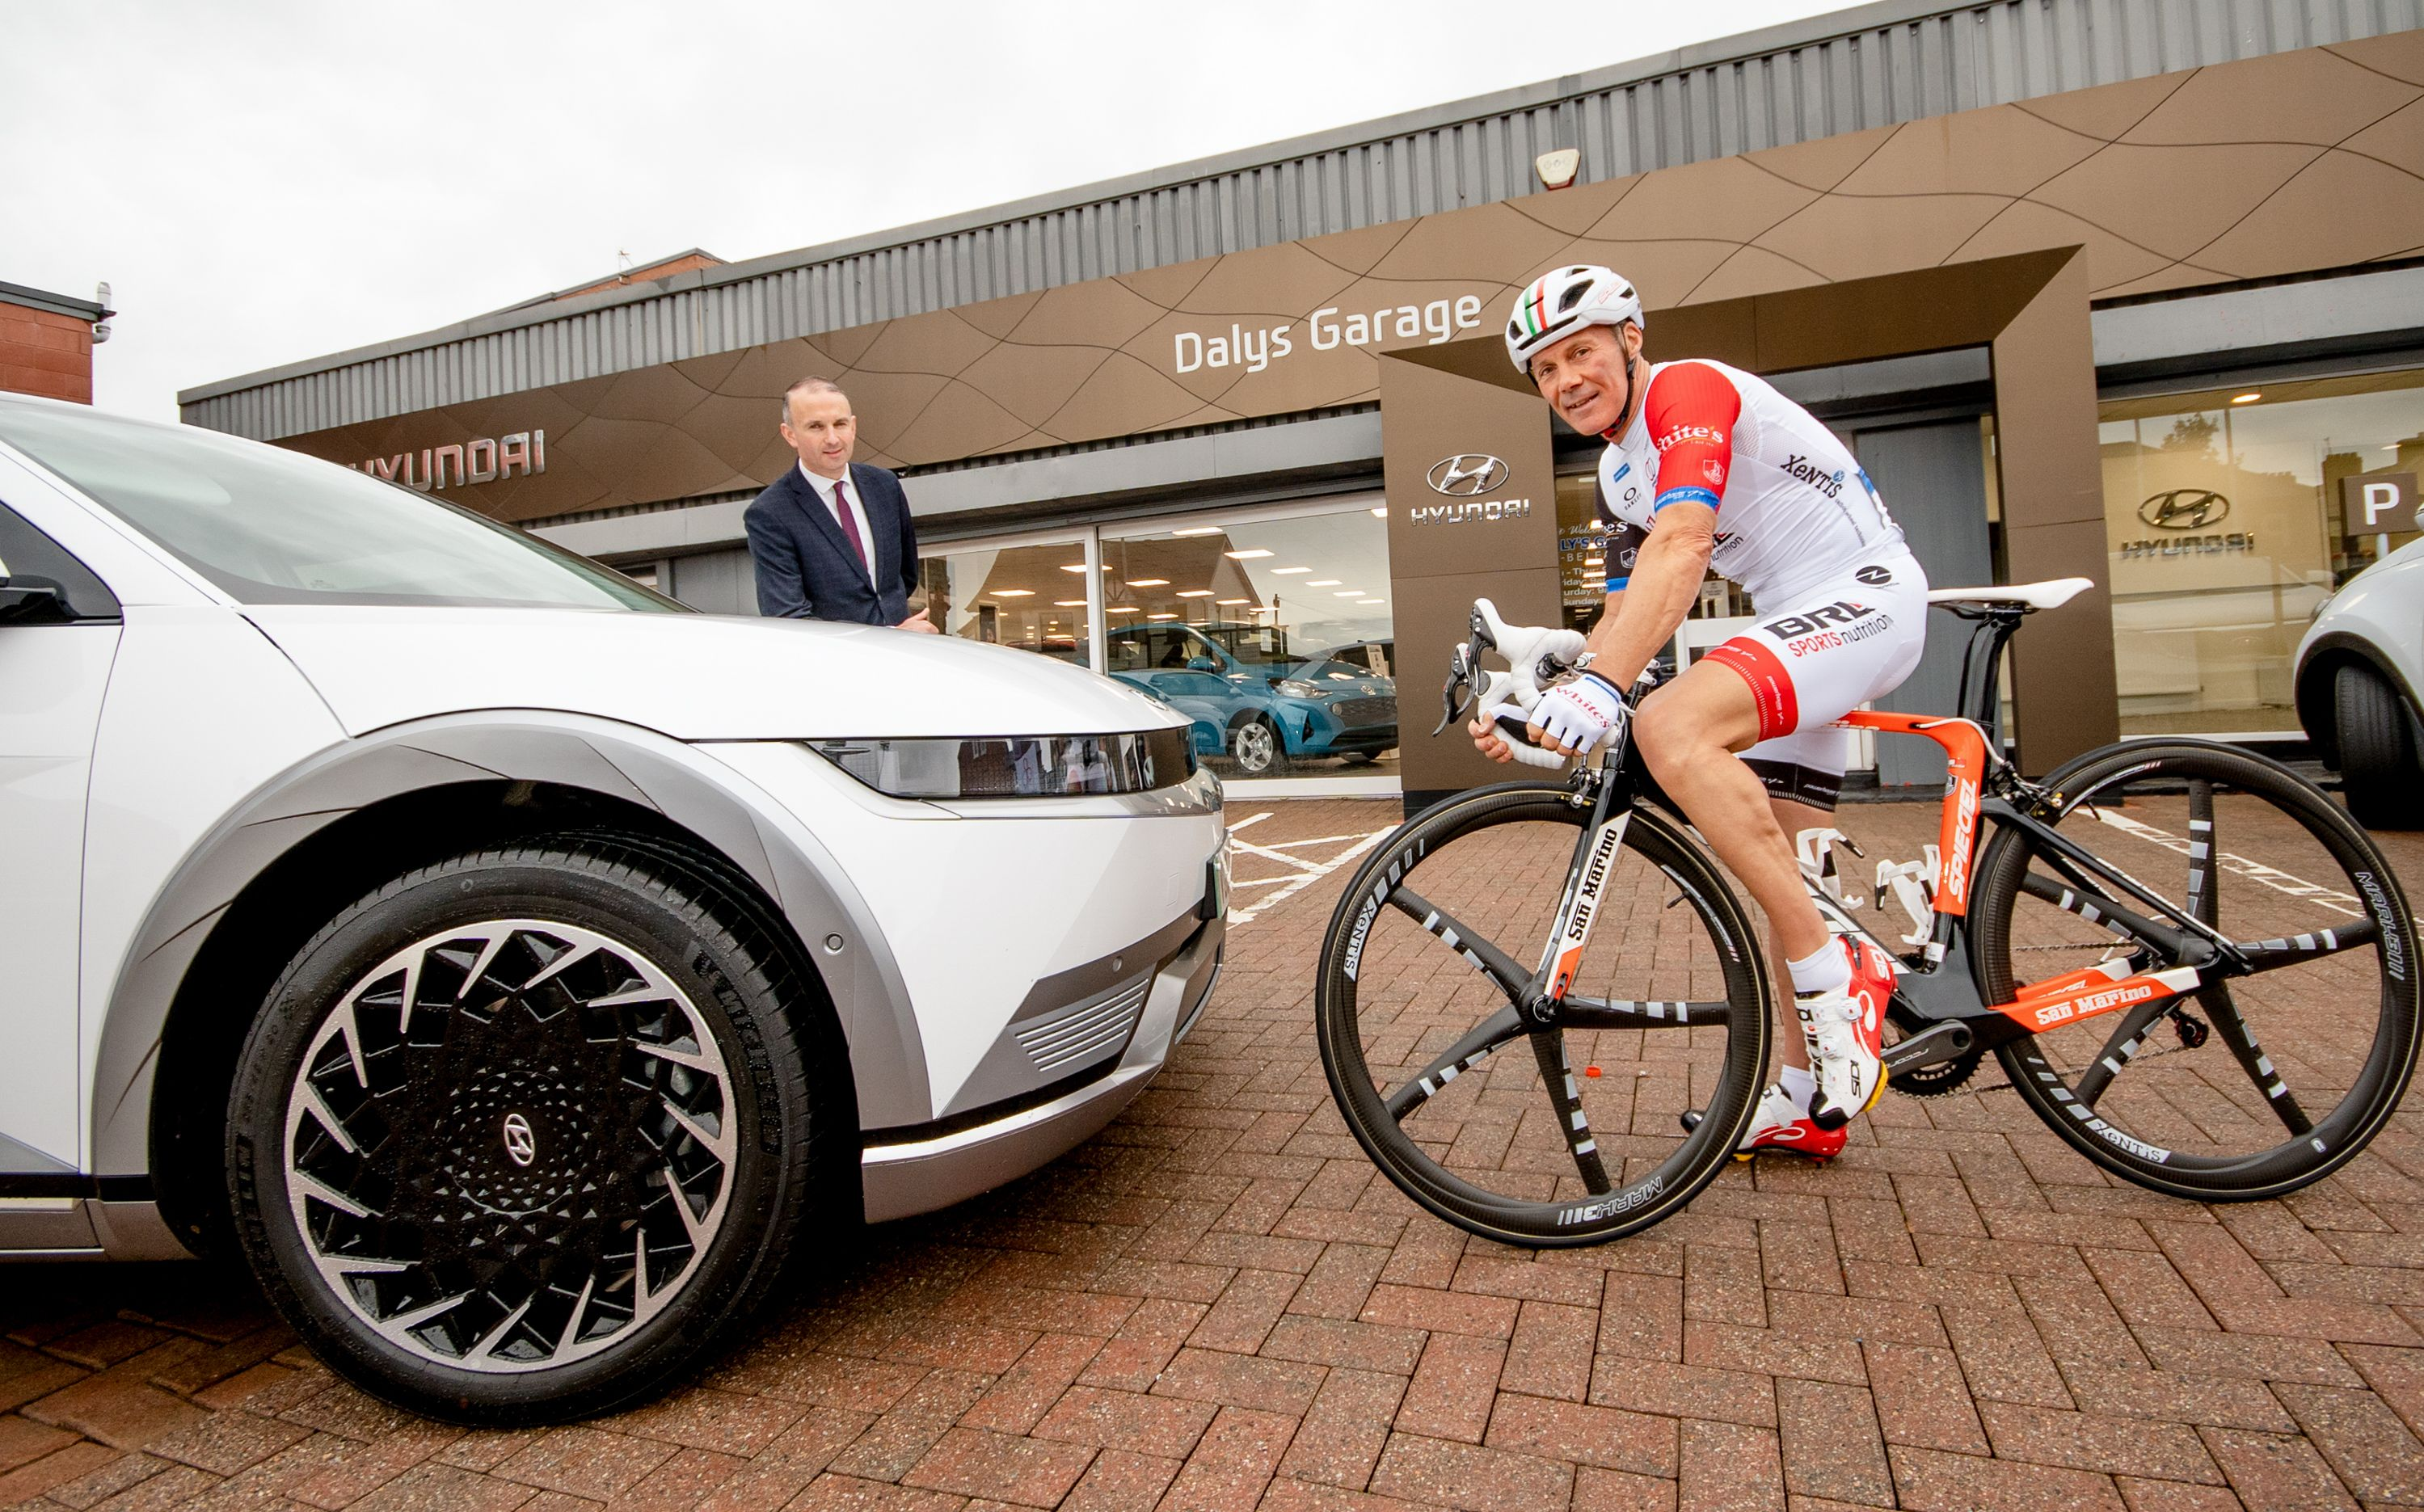 Endurance cyclist, Joe Barr pictured with Daniel Daly, of Daly's Garage